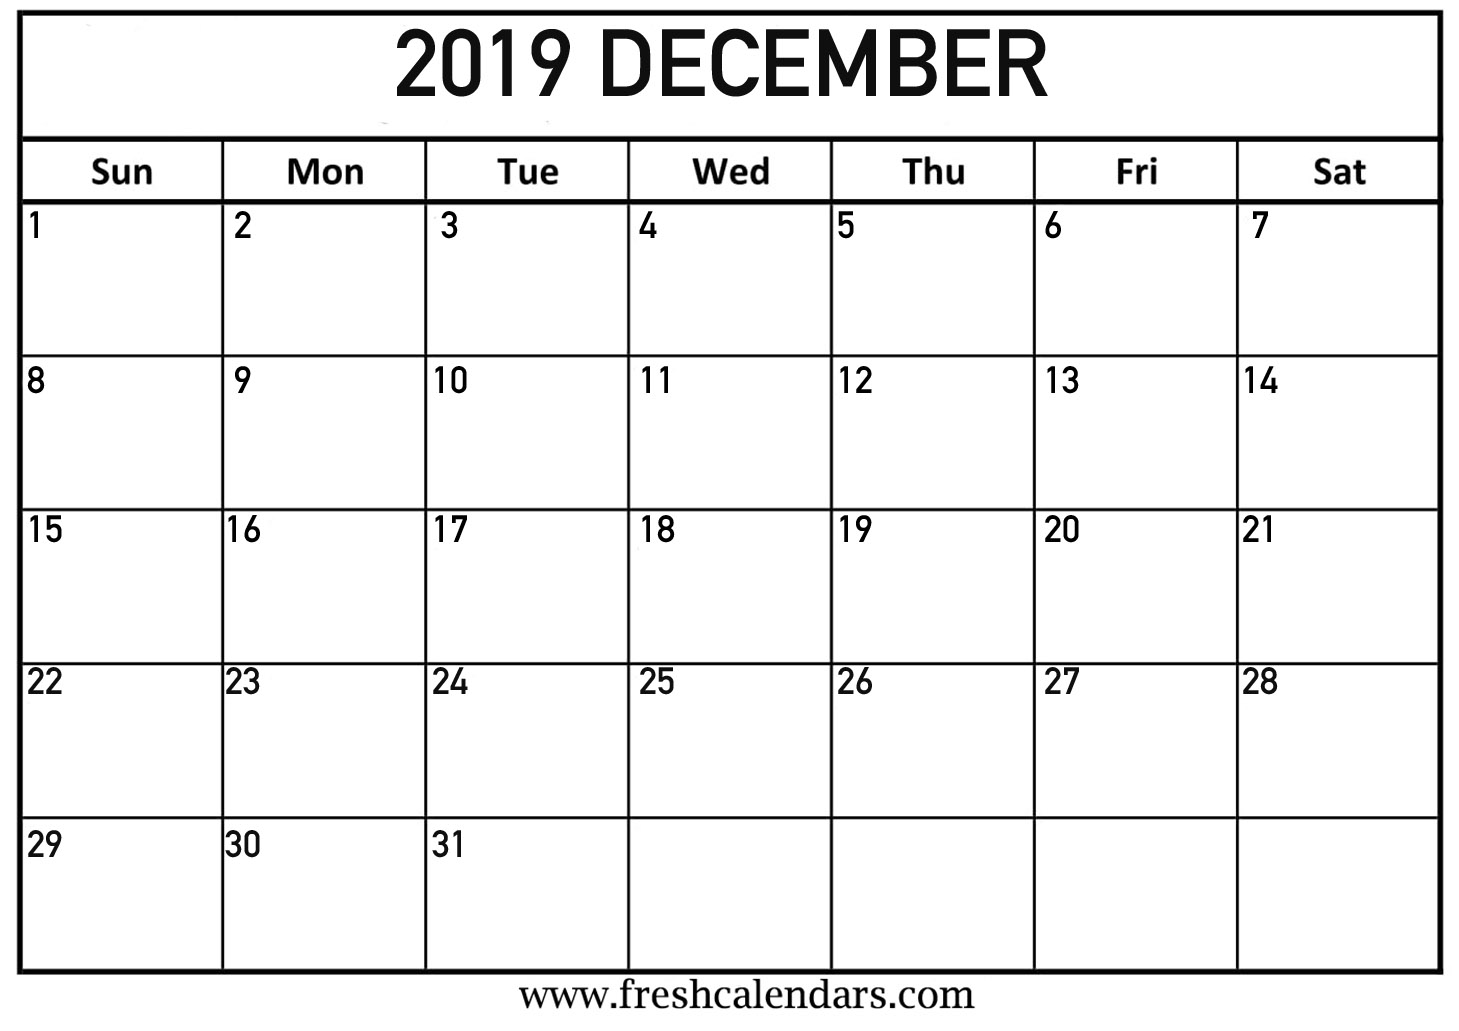 Calendar Month For December 2019 December 2019 Calendar Printable   Fresh Calendars